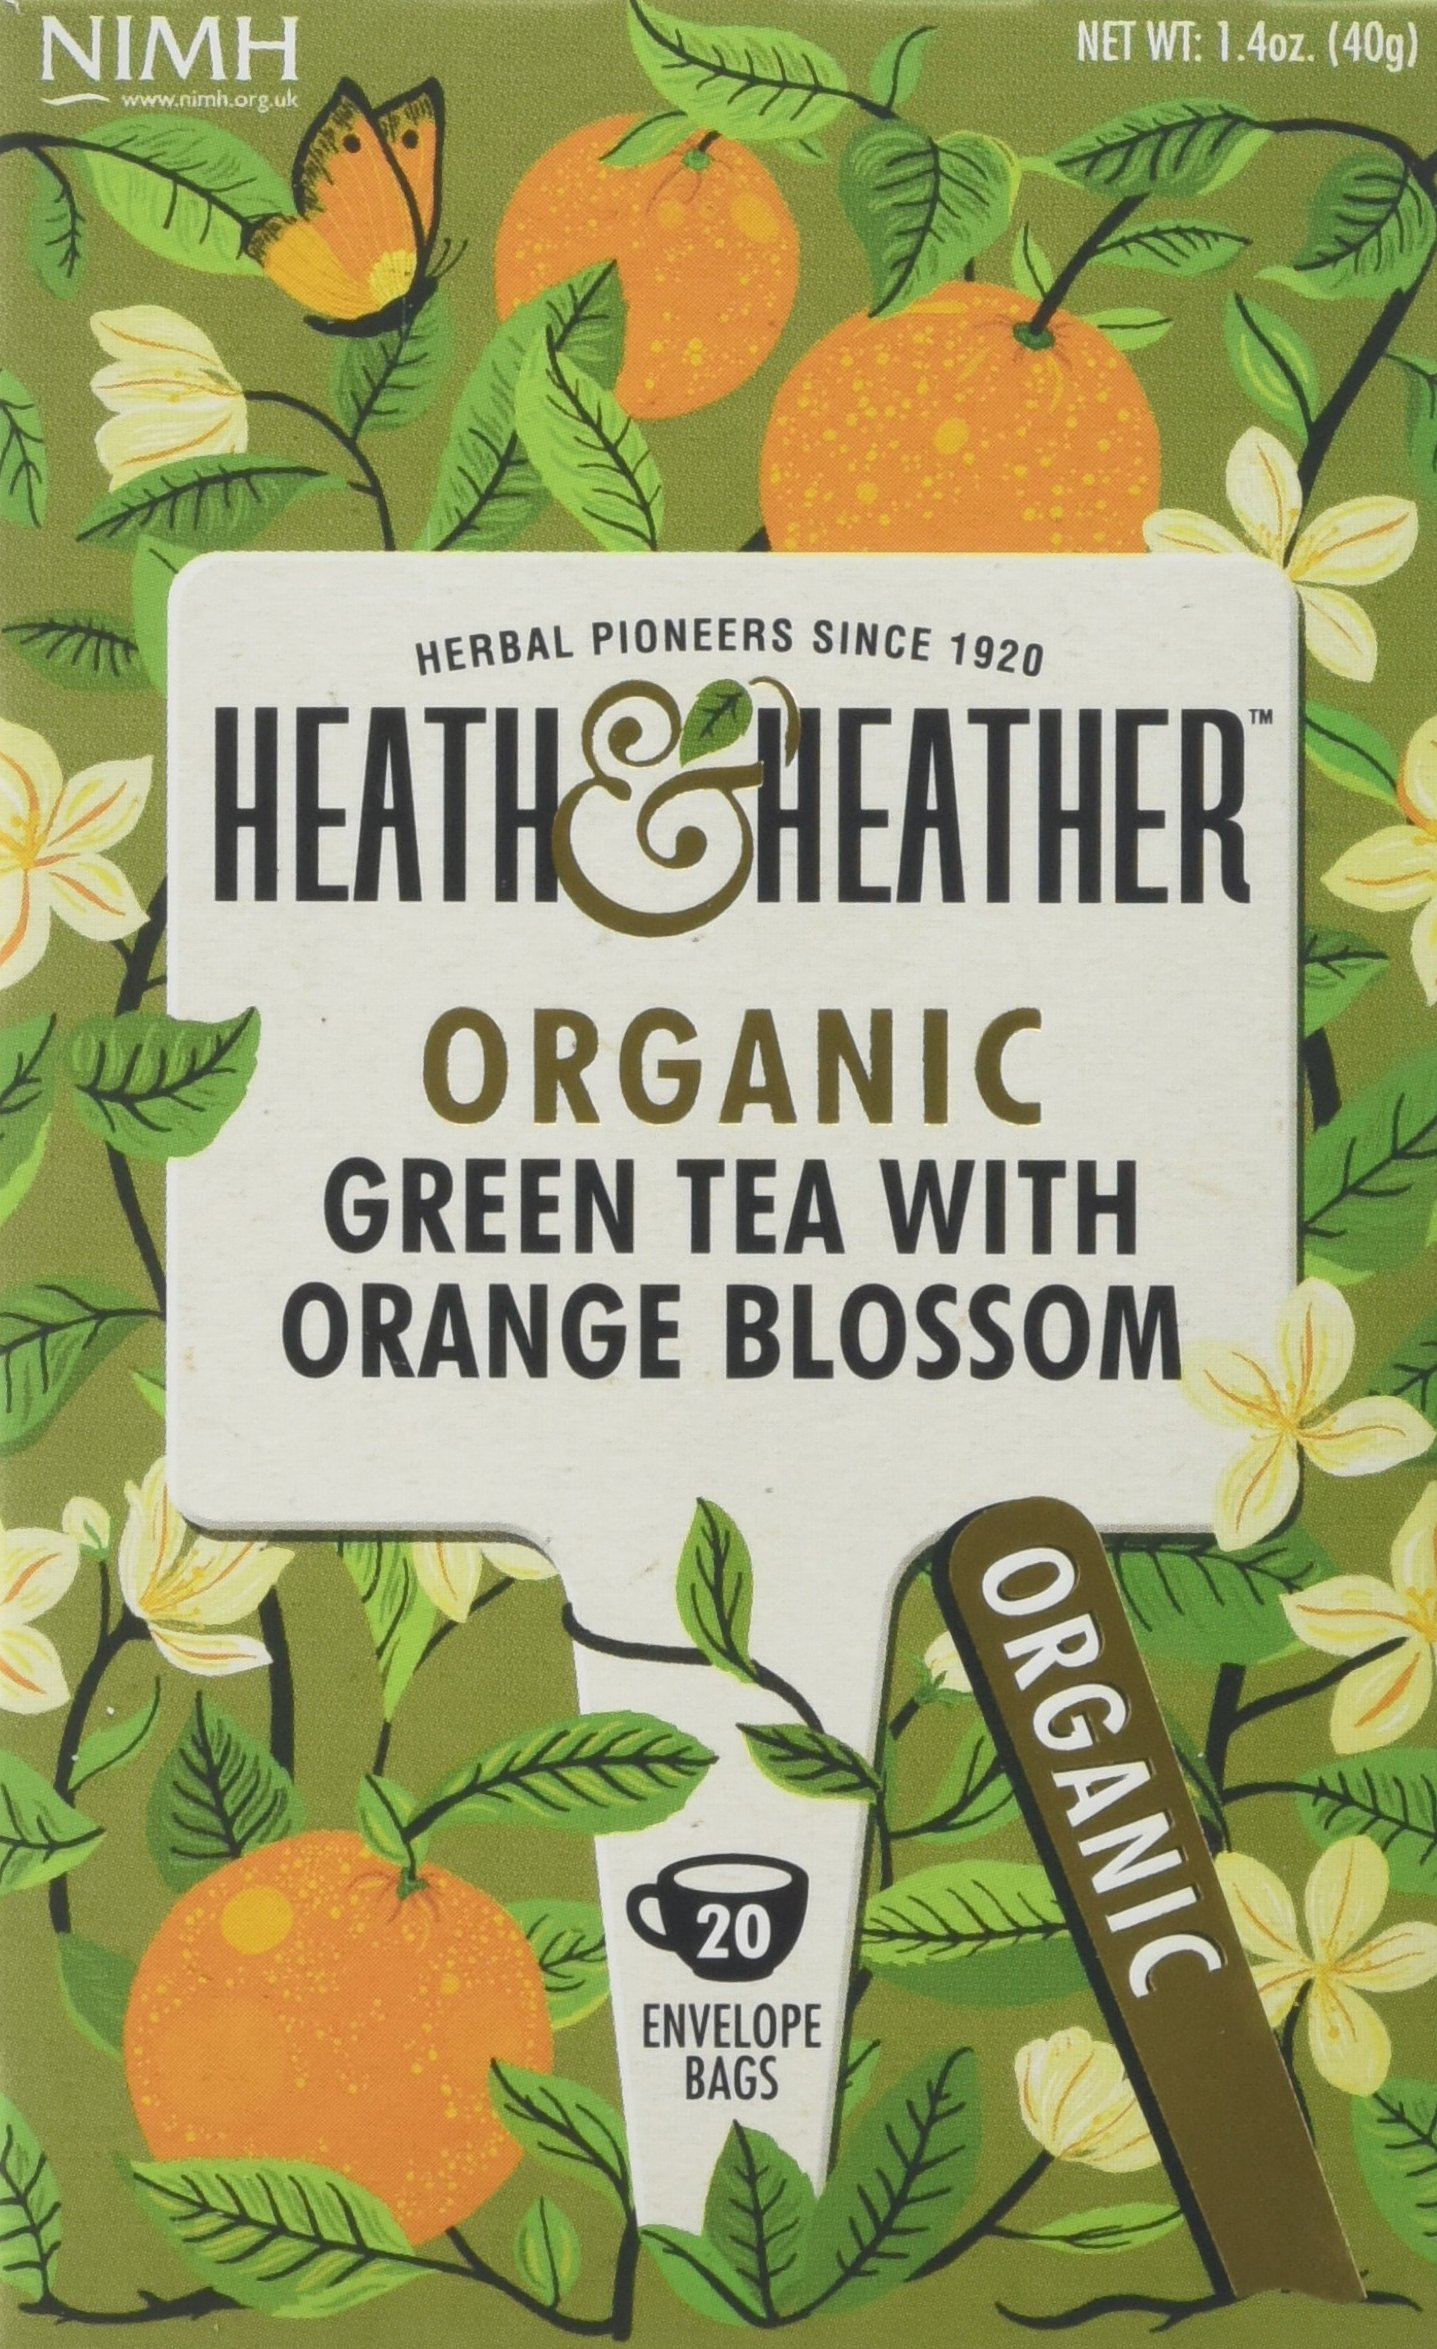 Heath & Heather organic green tea tea bundle (soil association) (green tea) (6 packs of 20 bags) (120 bags) (a fruity tea with aromas of orange) (brews in 2-3 minutes)